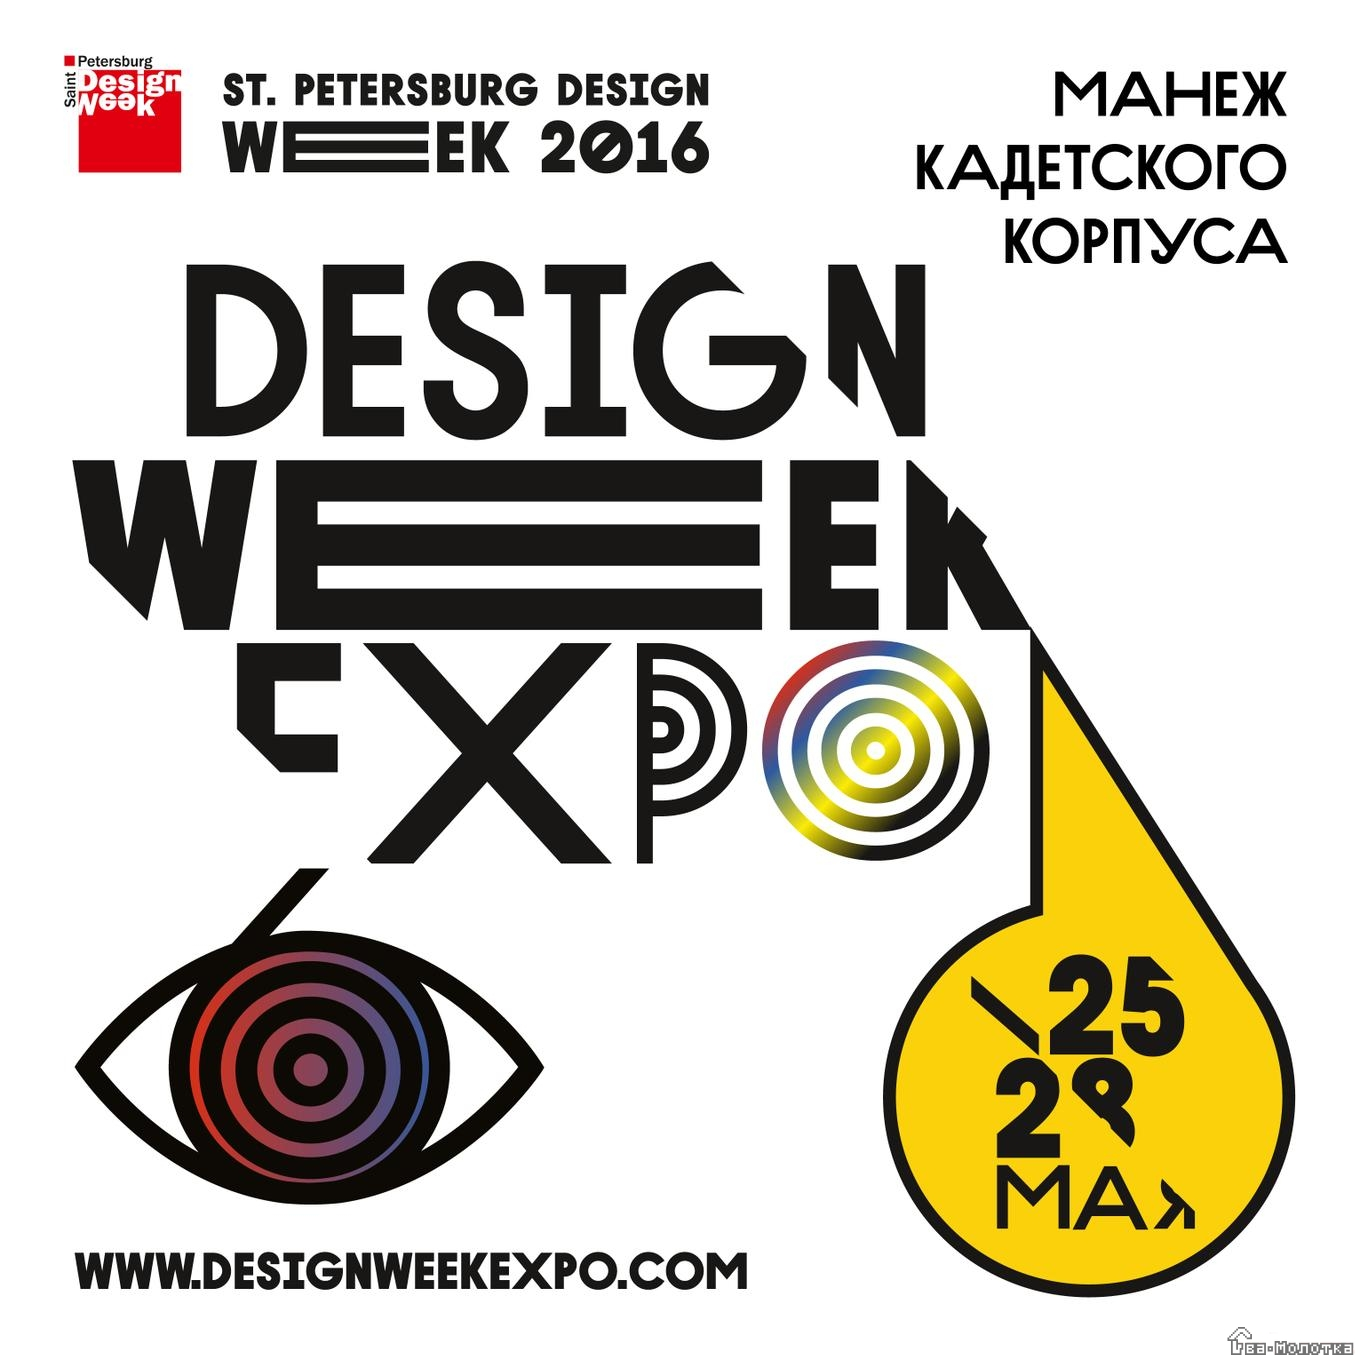 St. Petersburg Design Week 2016